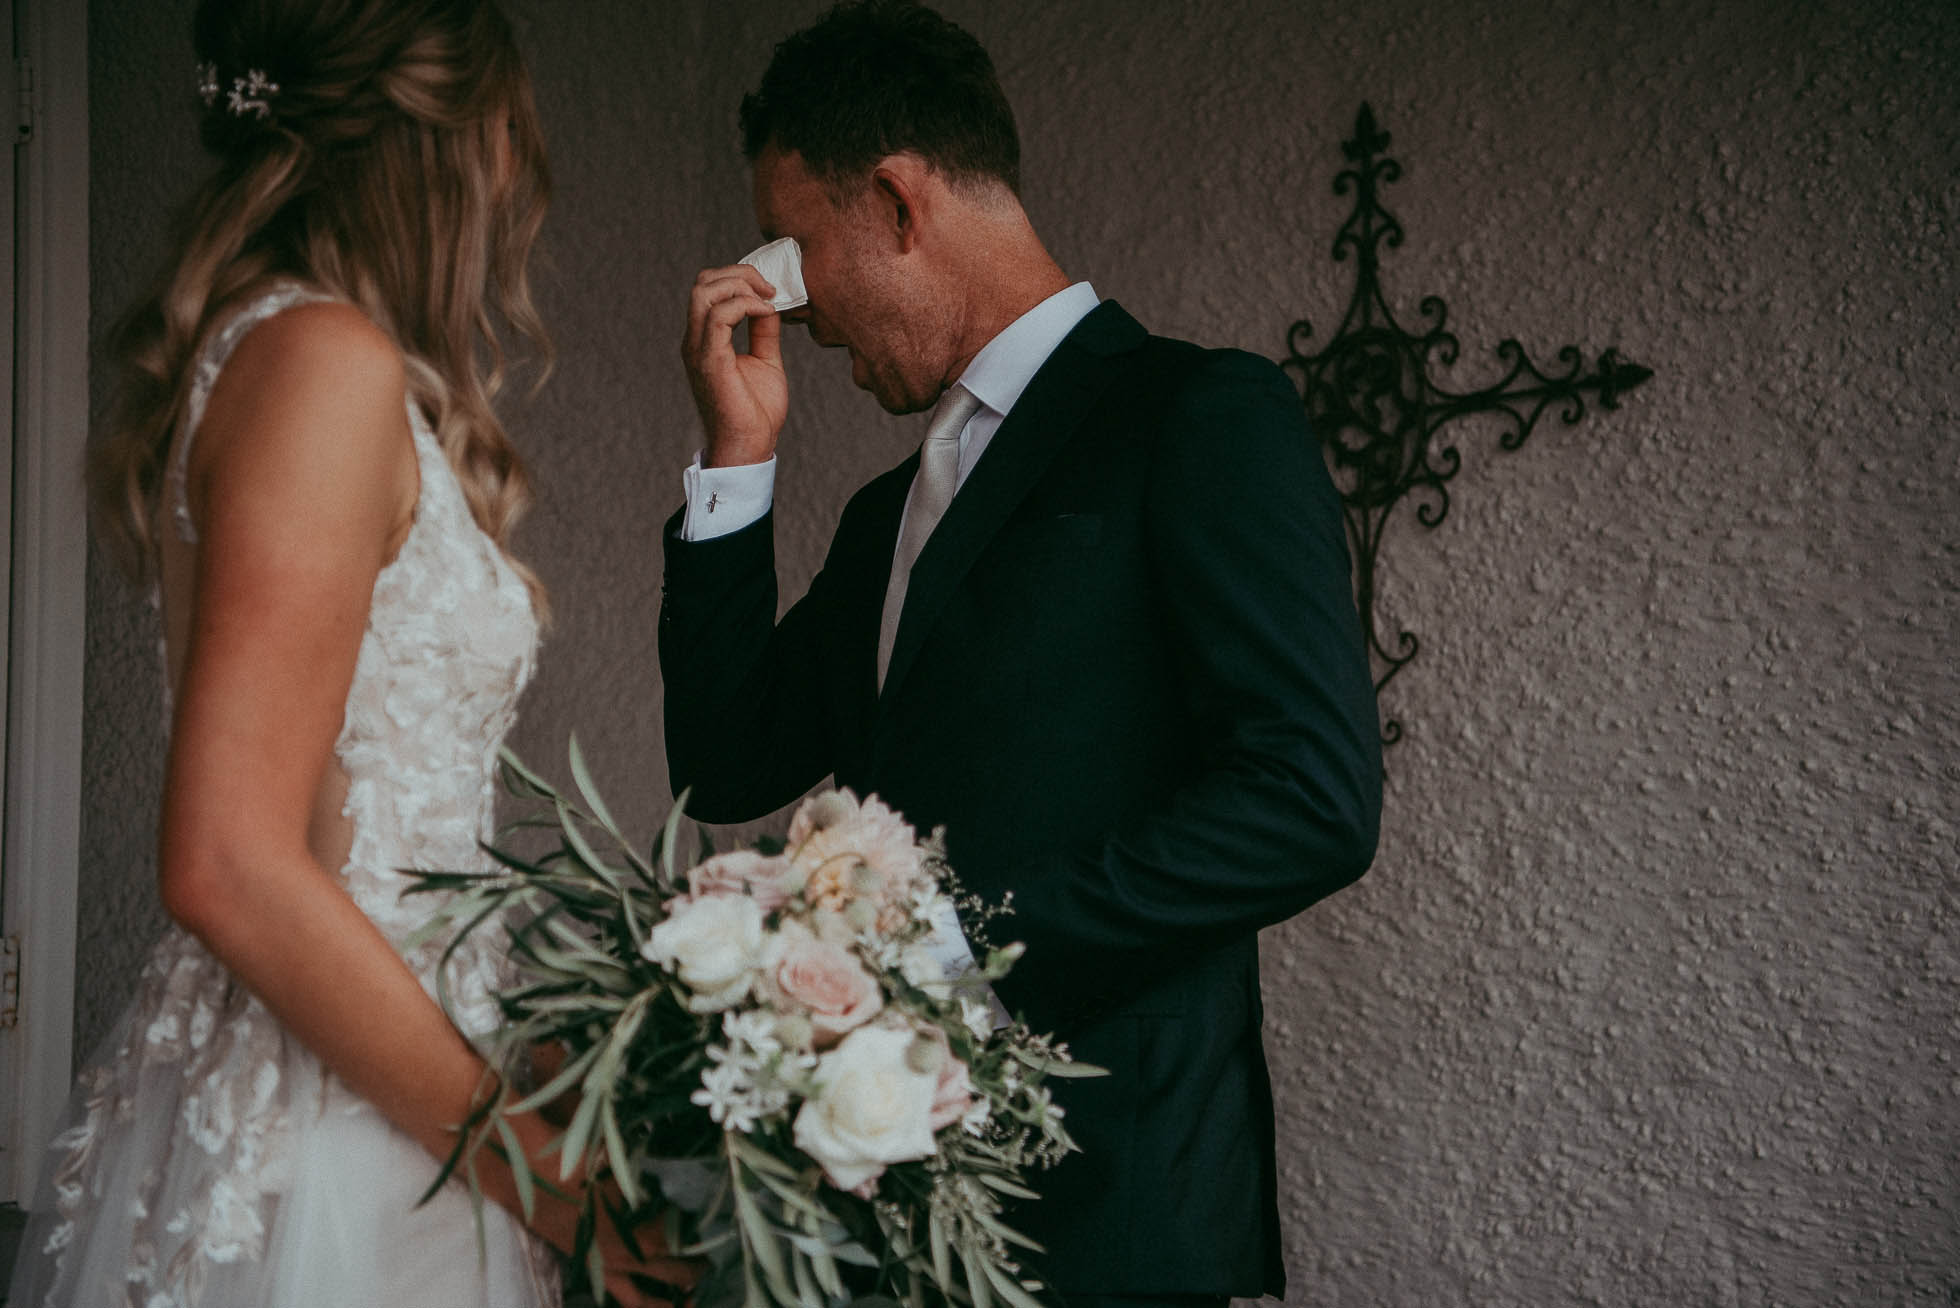 An emotional moment - A couple sees each other at their wedding